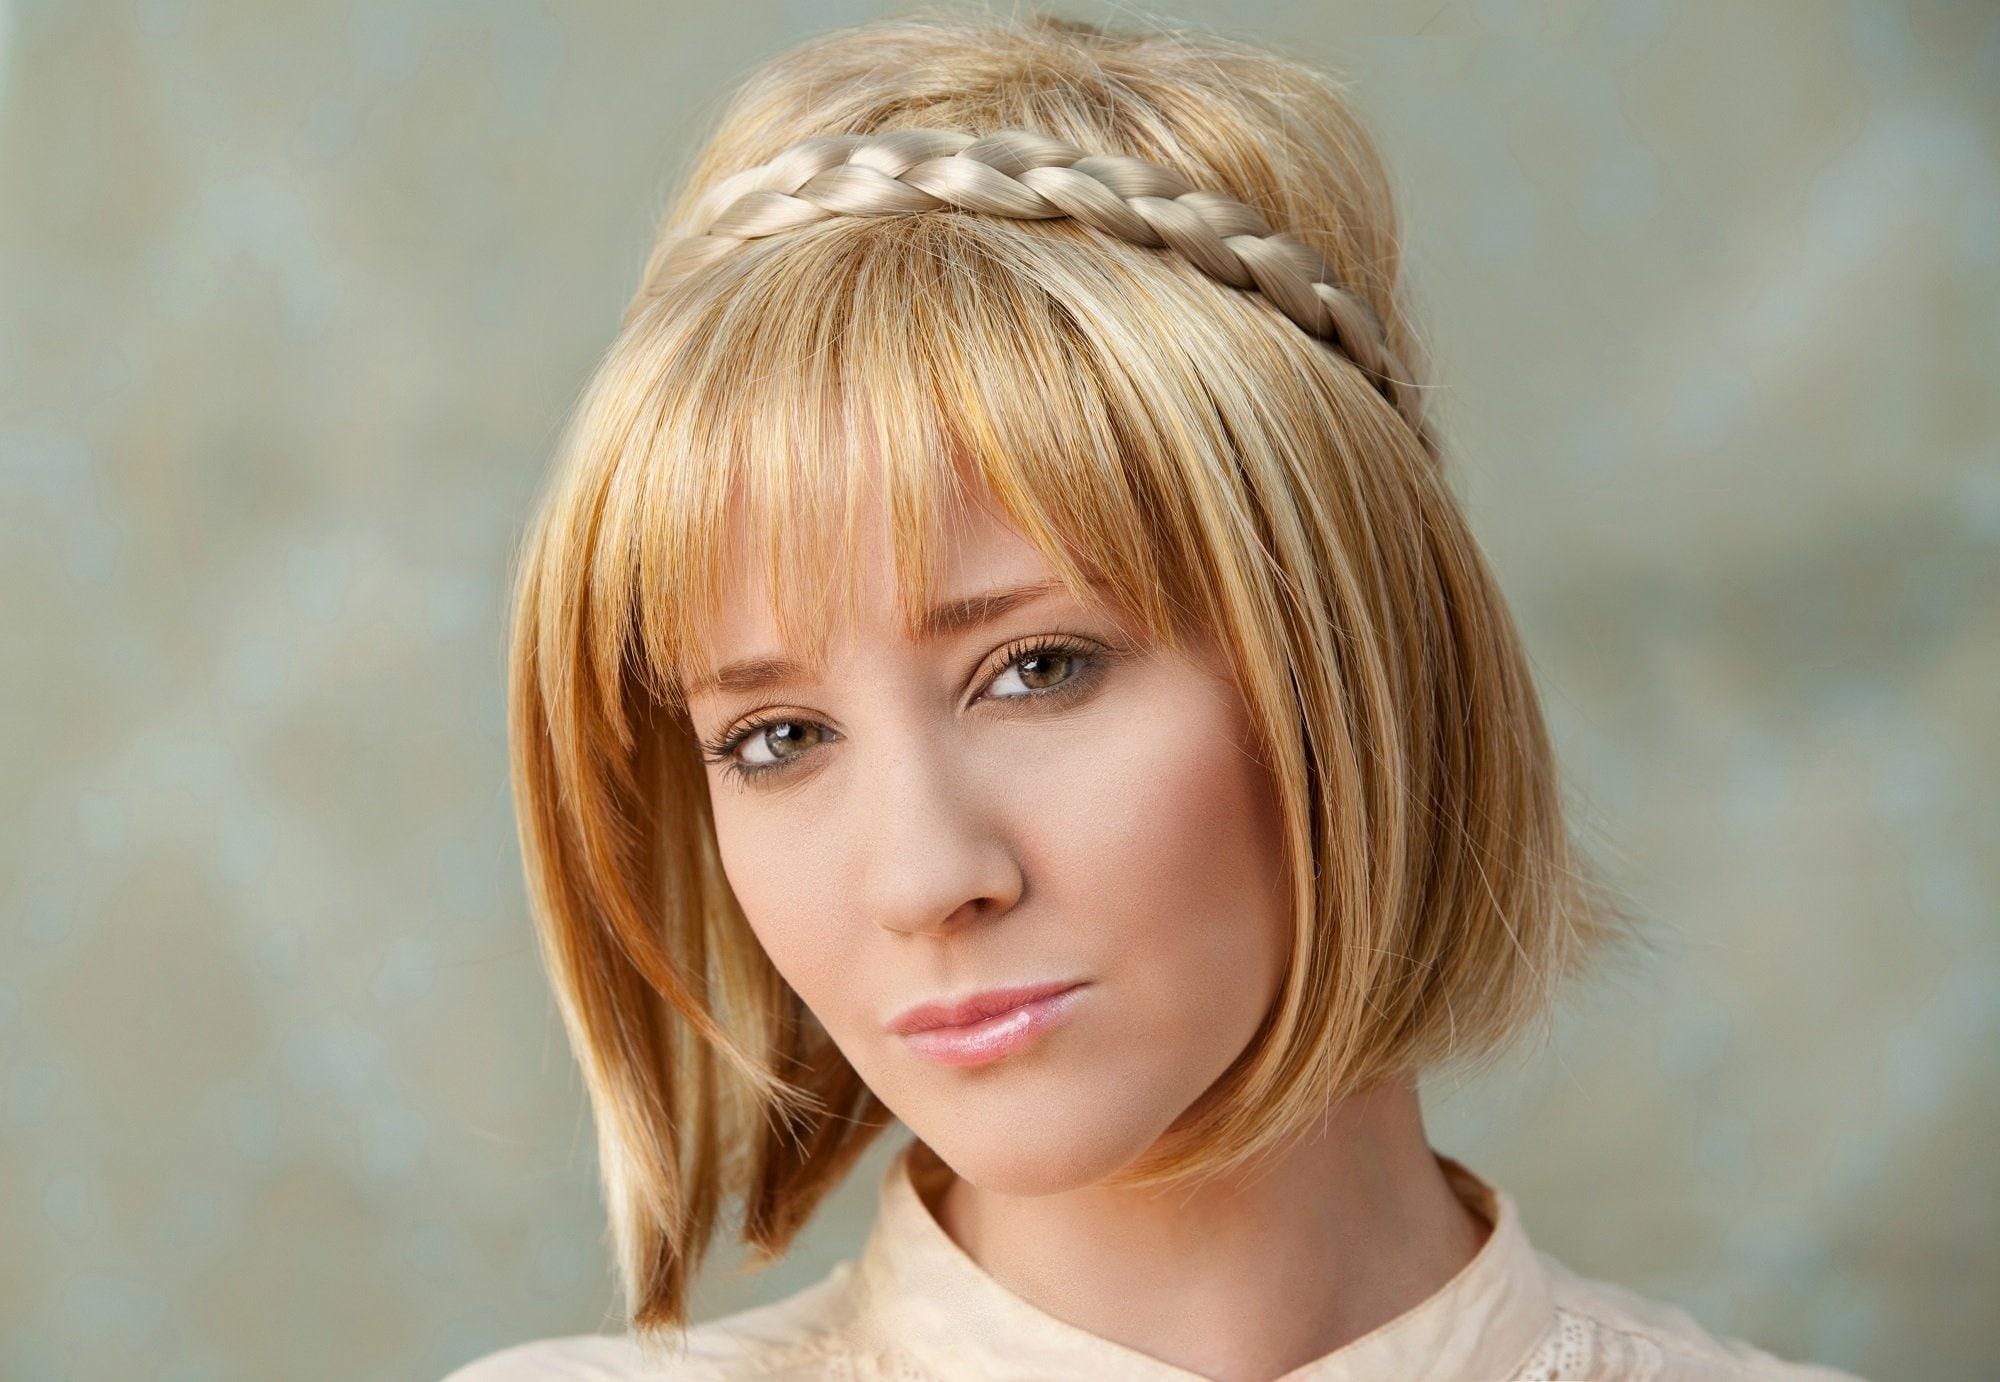 Short blonde hair: Closeup shot of a woman wearing beige top with blonde bob with bangs